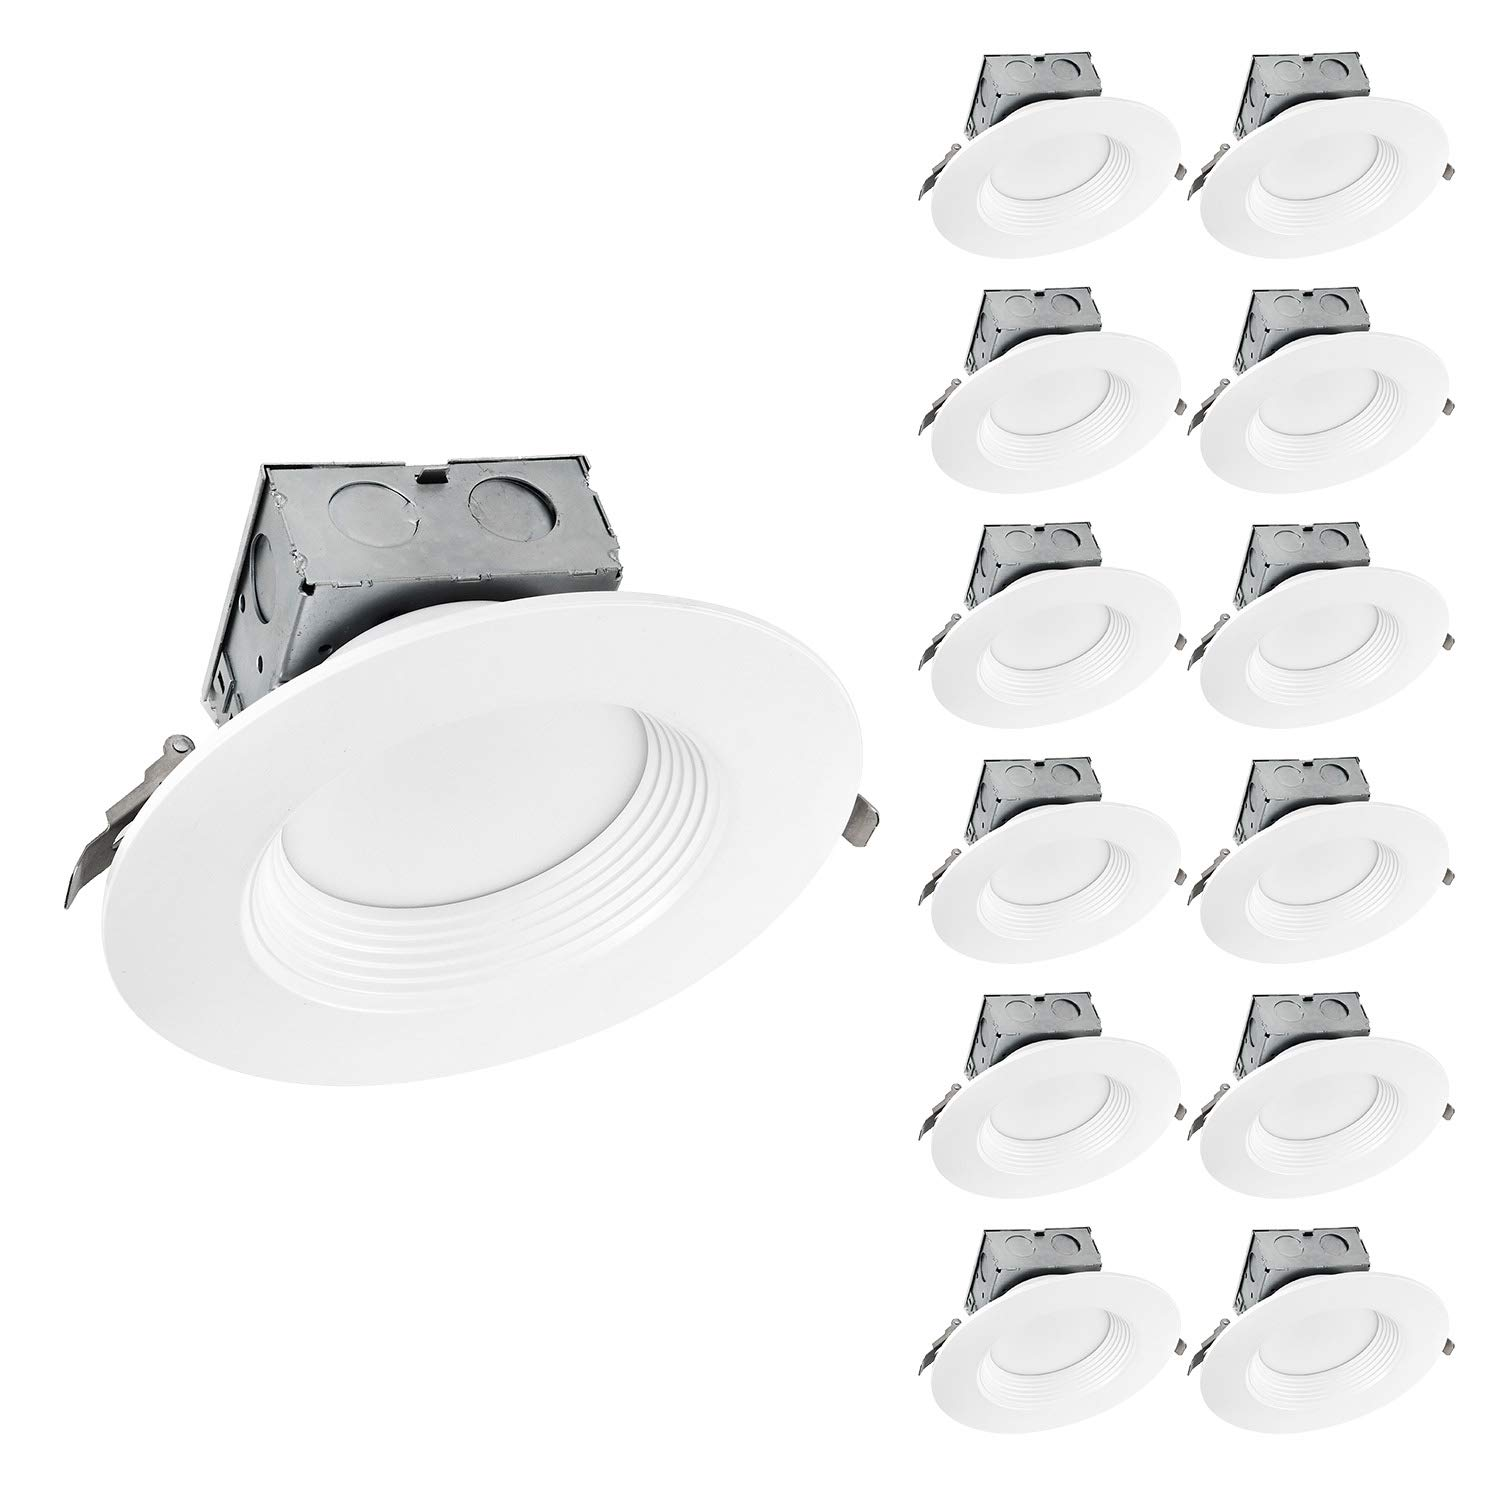 OSTWIN (12 Pack) 6 inch IC Rated LED Ceiling Recessed Downlight Kit With Junction box, Baffle Trim, Dimmable, 15W(120Watt Repl) 5000K Daylight, 1100Lm. No Can Needed ETL and Energy Star Listed